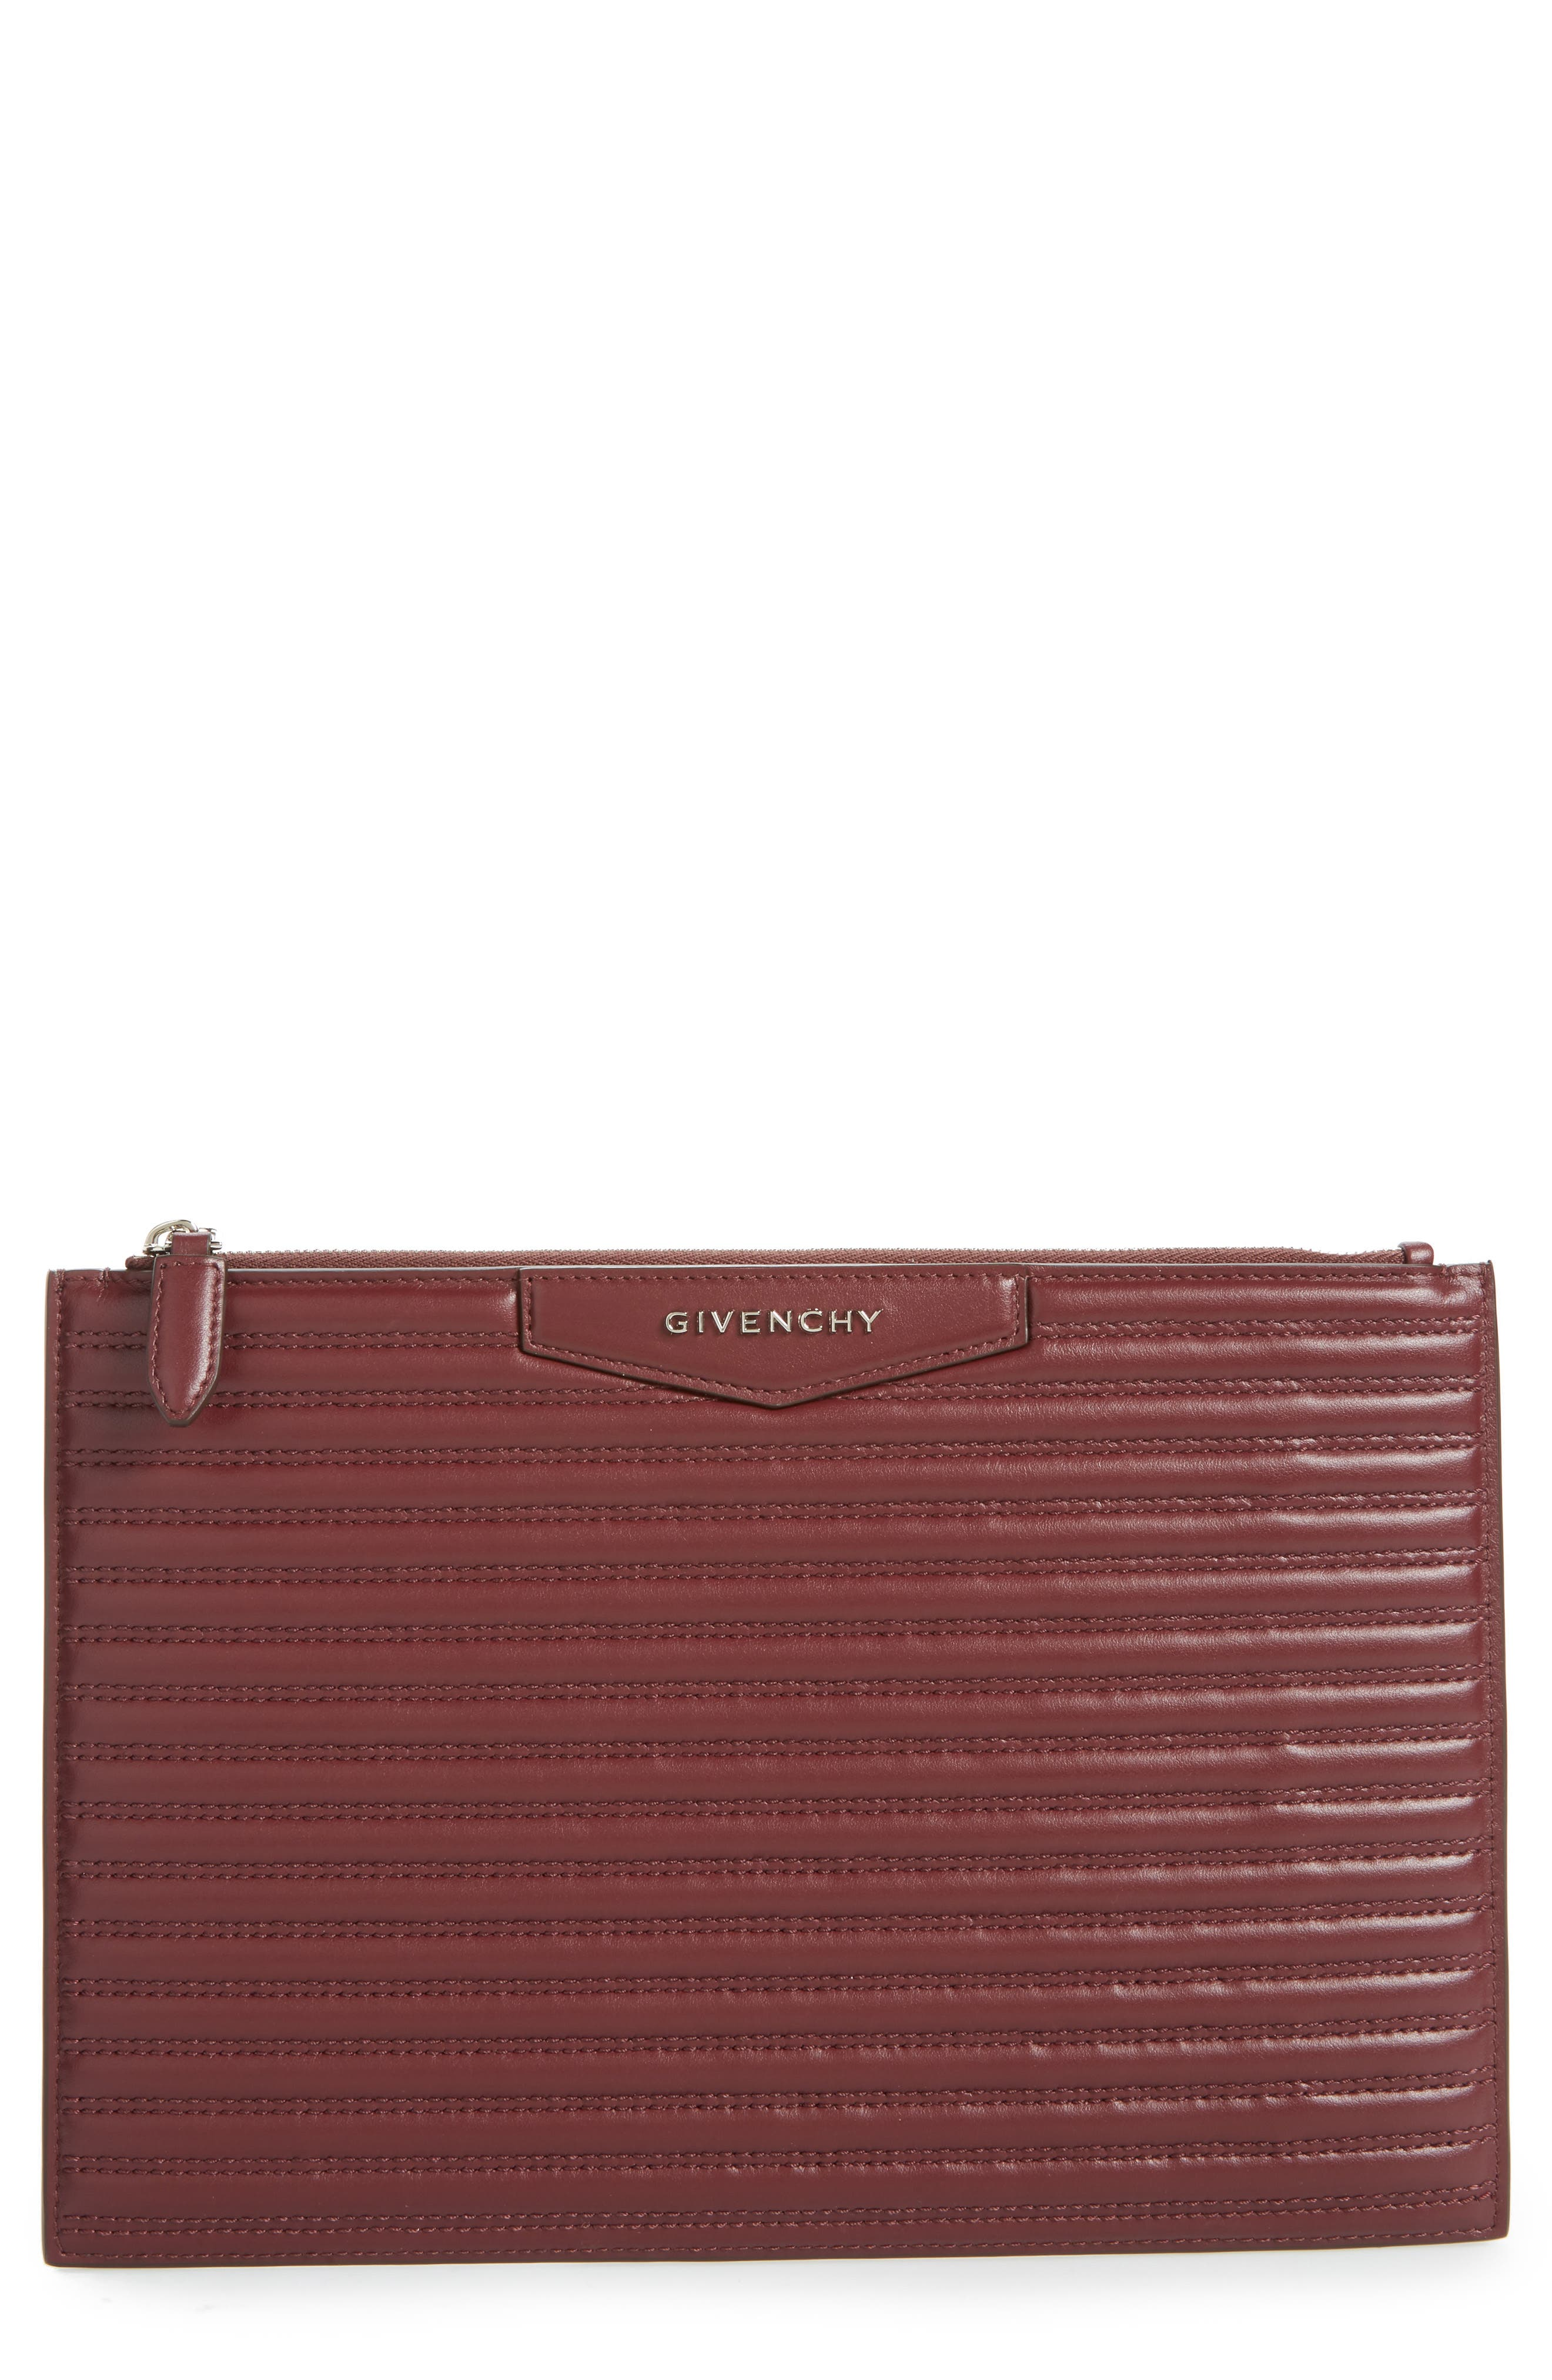 Antigona Quilted Leather Pouch,                             Main thumbnail 1, color,                             642